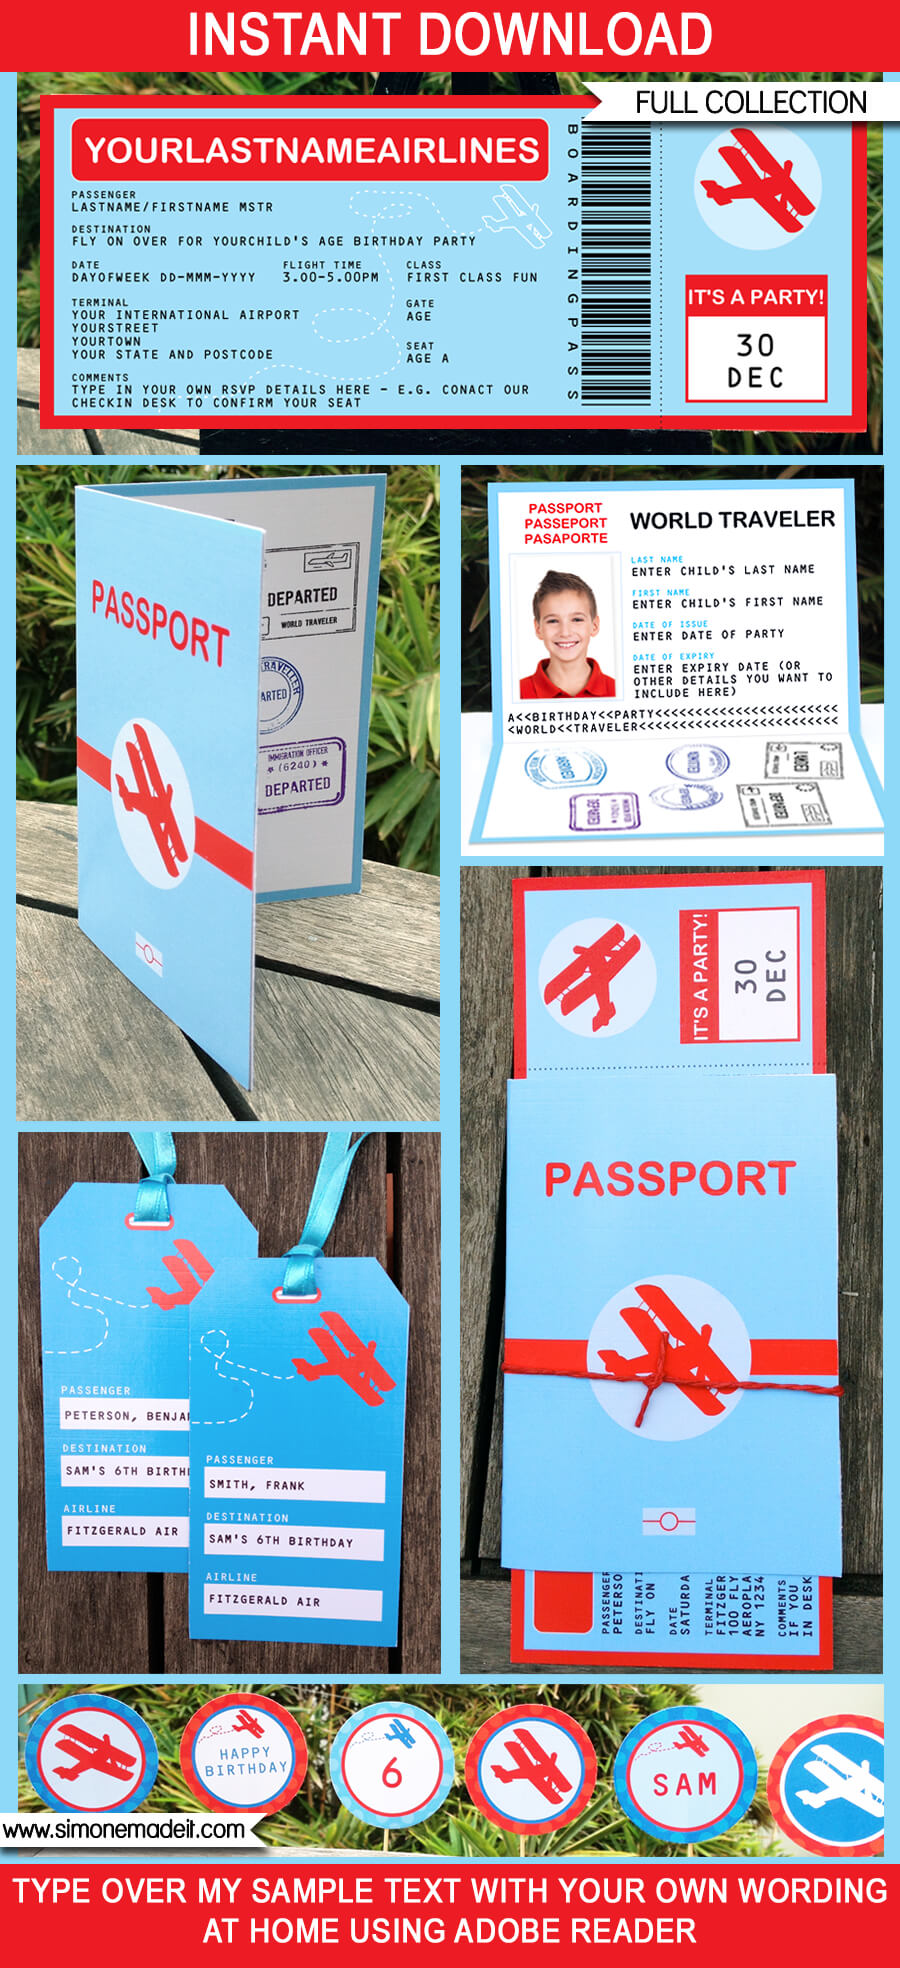 Airplane Party Printables, Invitations, Decorations | Boarding Pass | Airplane Ticket | Passport | Birthday Party | Editable DIY Theme Templates | INSTANT DOWNLOADS $12.50 via SIMONEmadeit.com